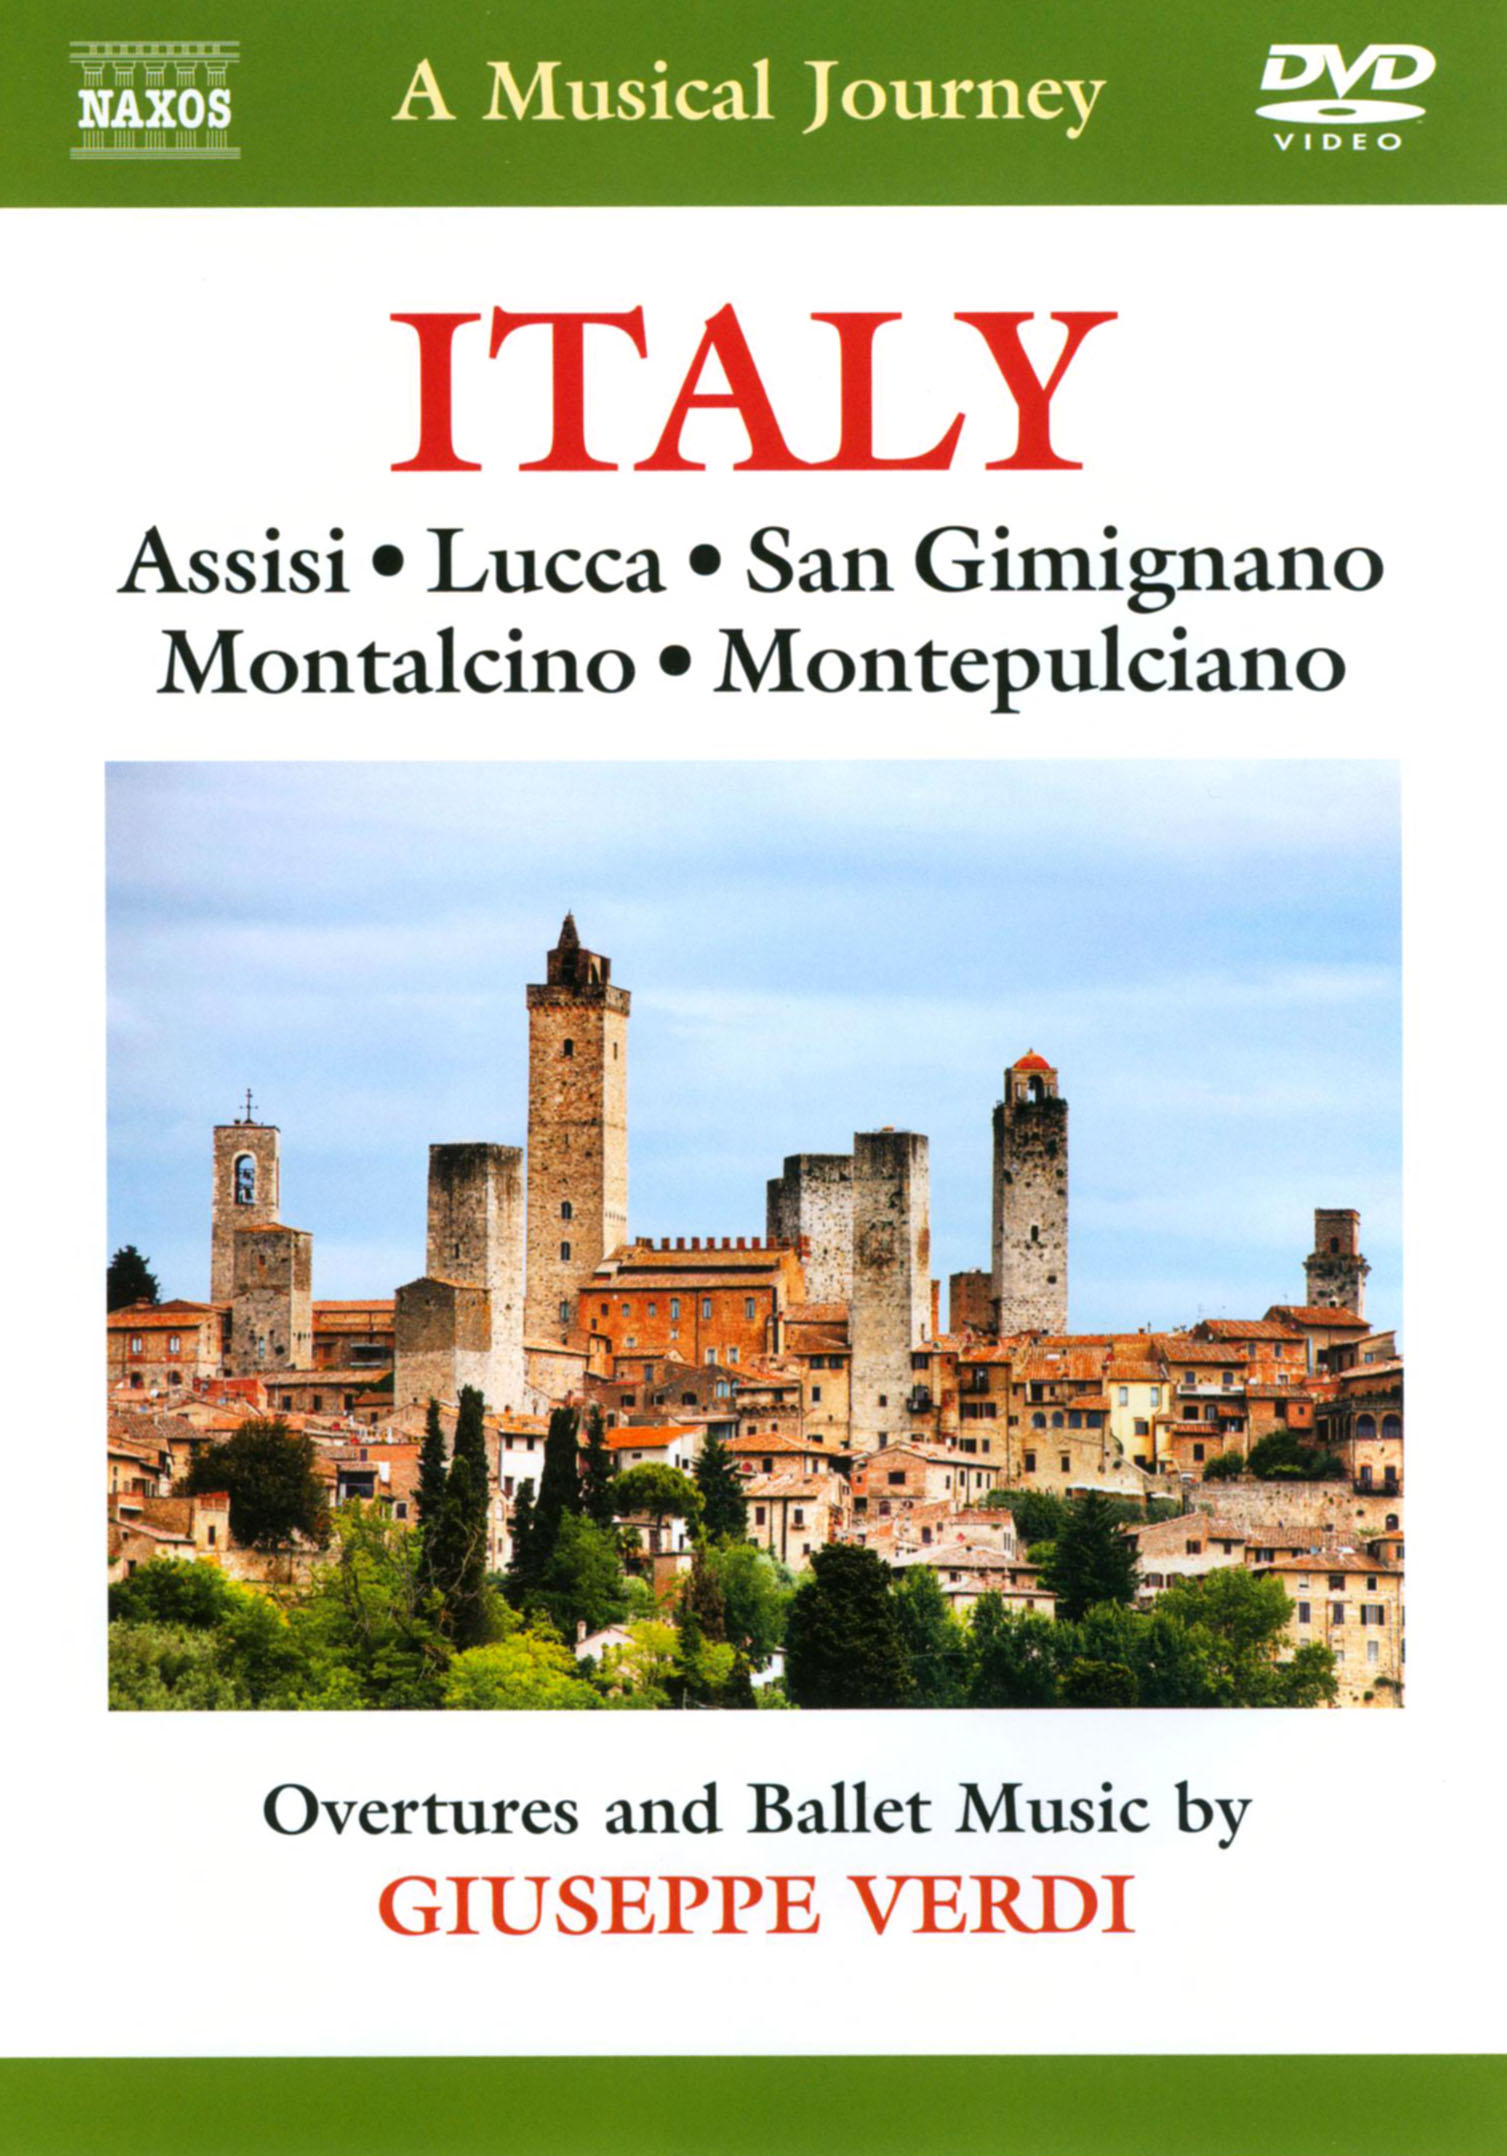 A Musical Journey: Italy - Assisi/Lucca/San Gimignano/Montalcino/Montepulciano